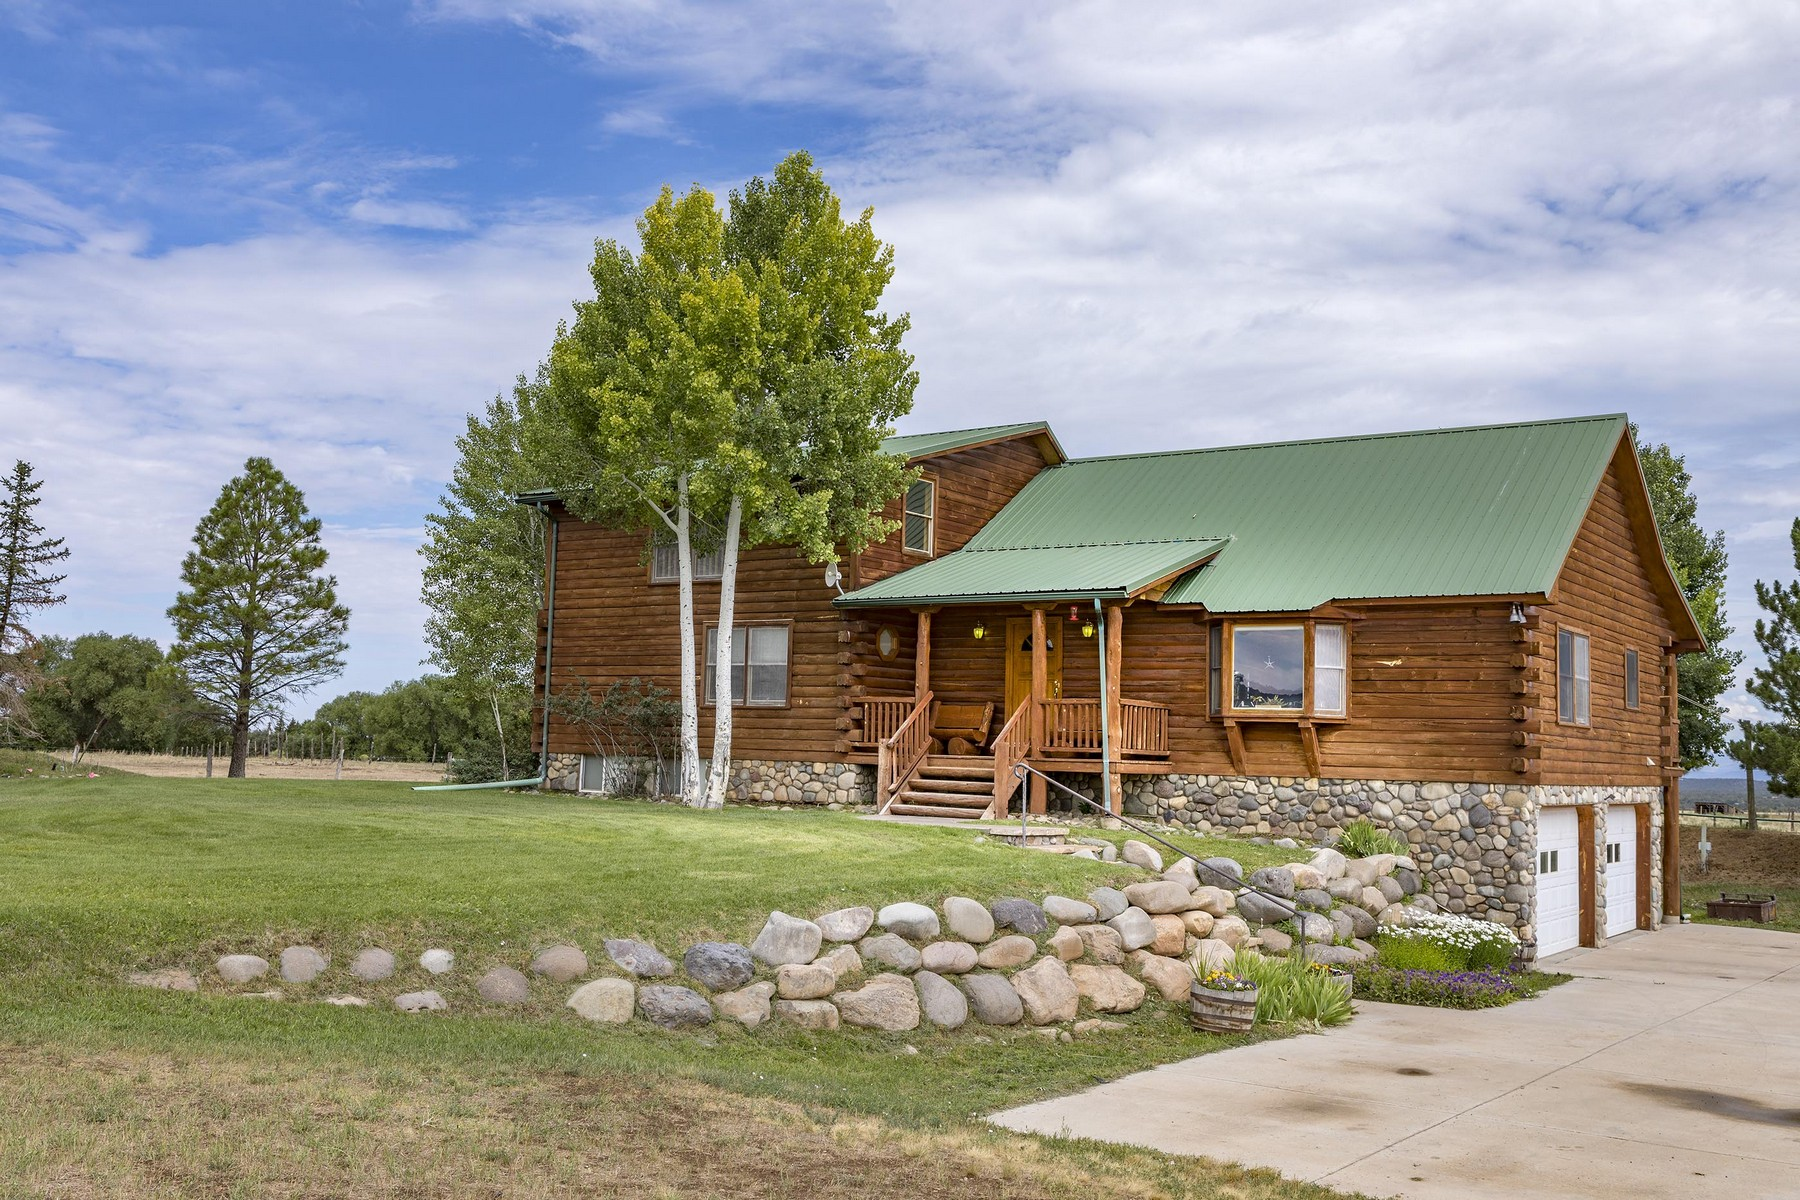 Single Family Home for Active at 40487 CO-145 40487 CO-145 Norwood, Colorado 81423 United States